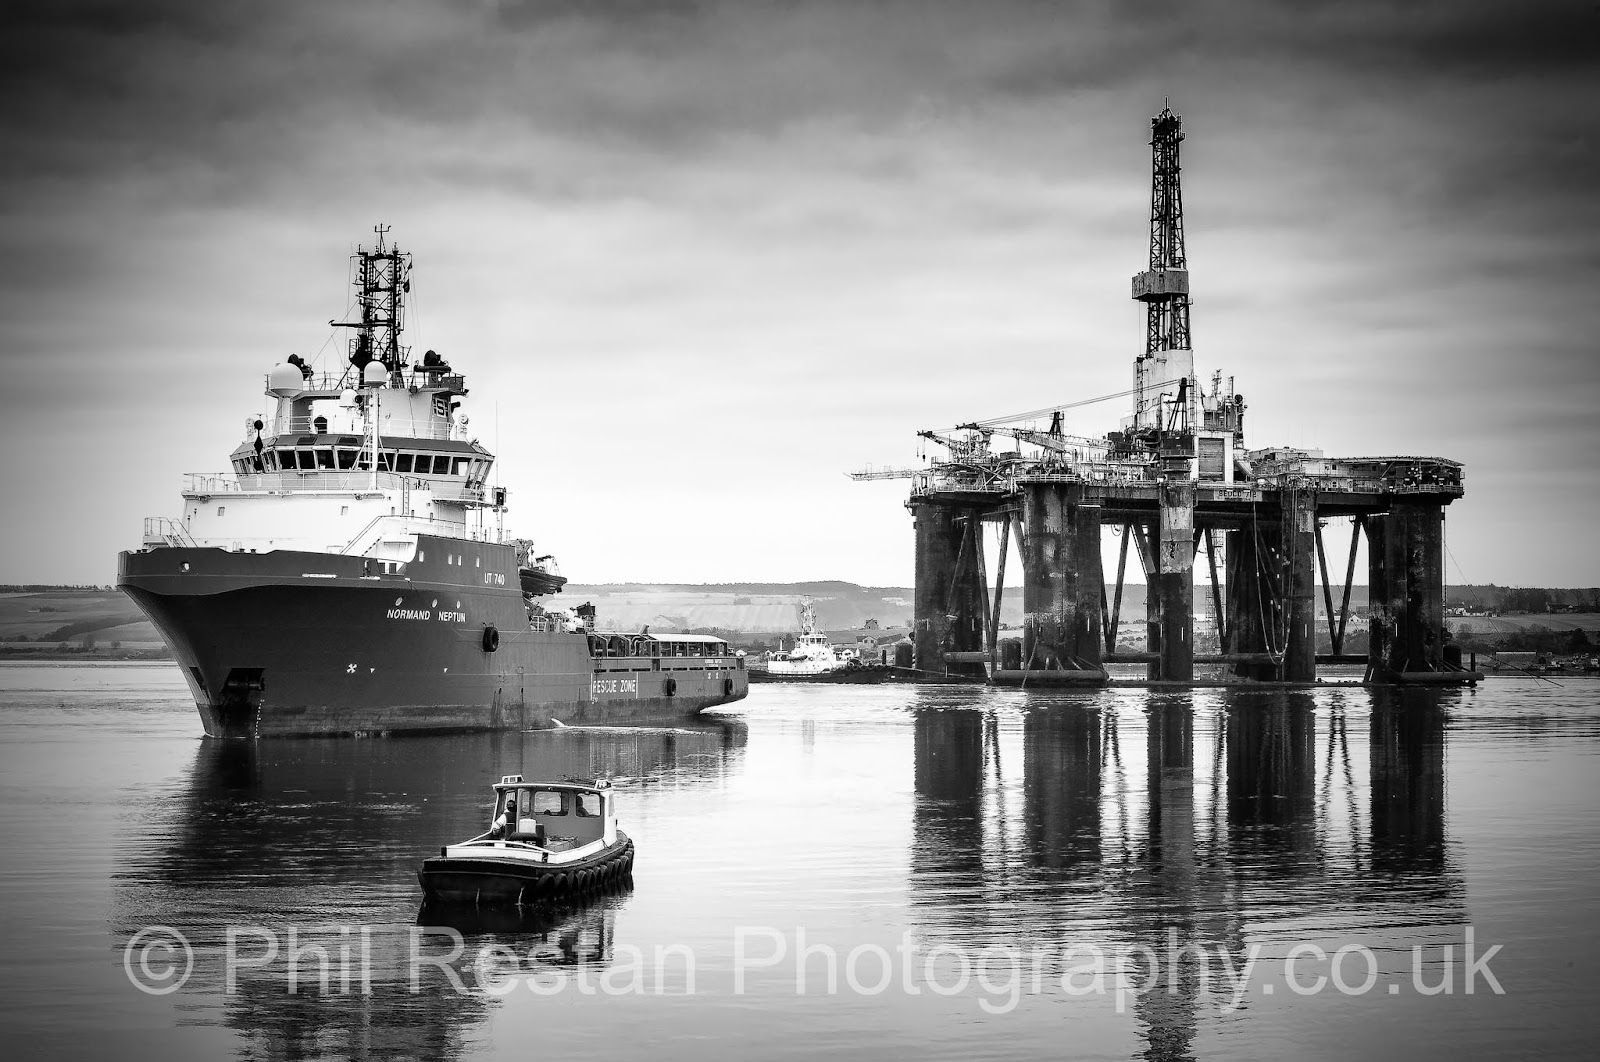 hoto of Sedco 712 , Normand Neptun and CFPA( Cromarty Firth Port Authority) Tug